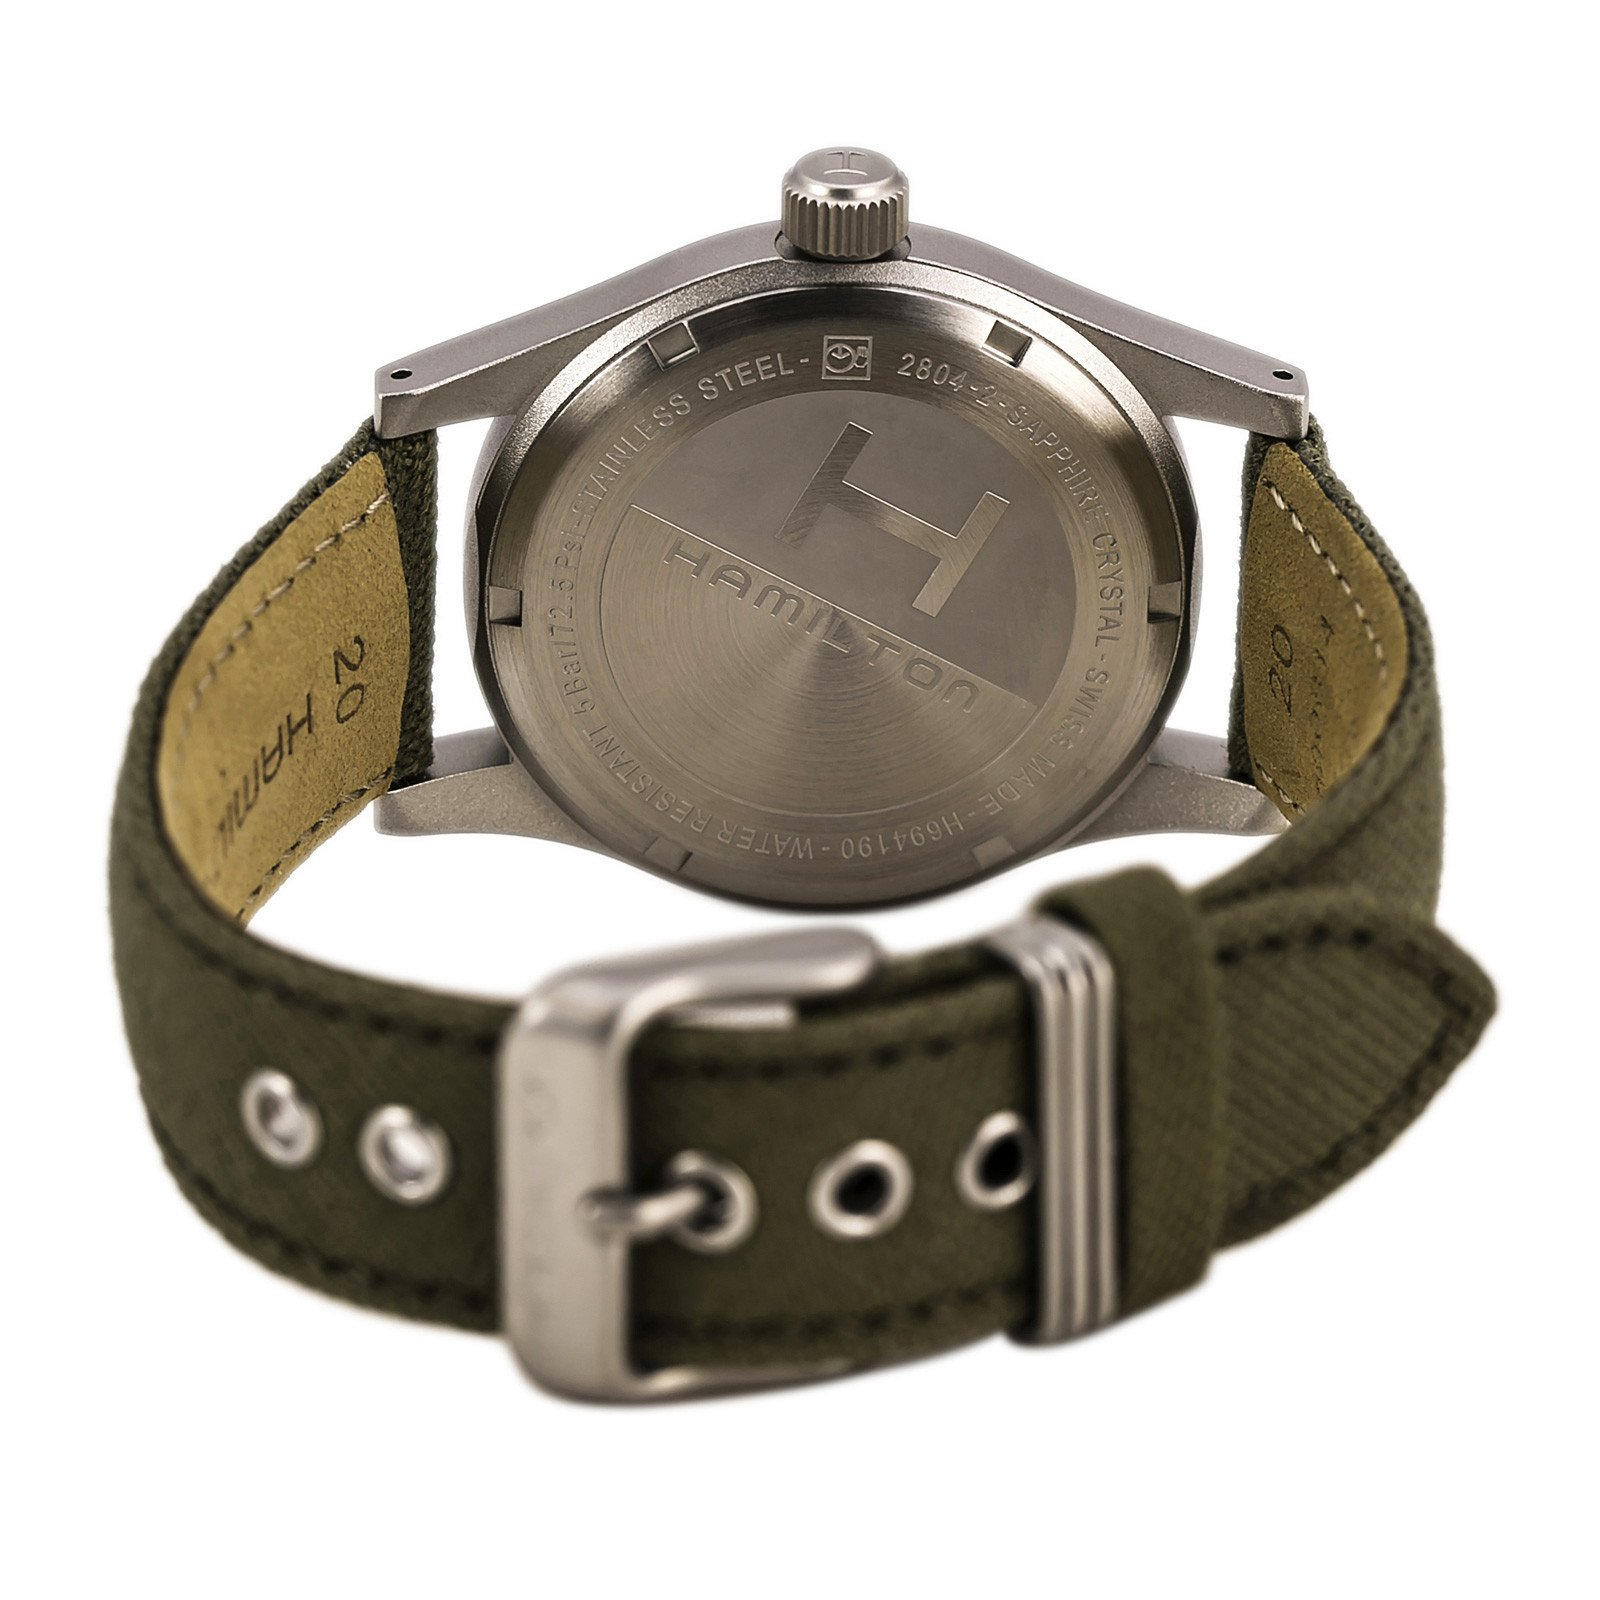 back of watch and EAT movement